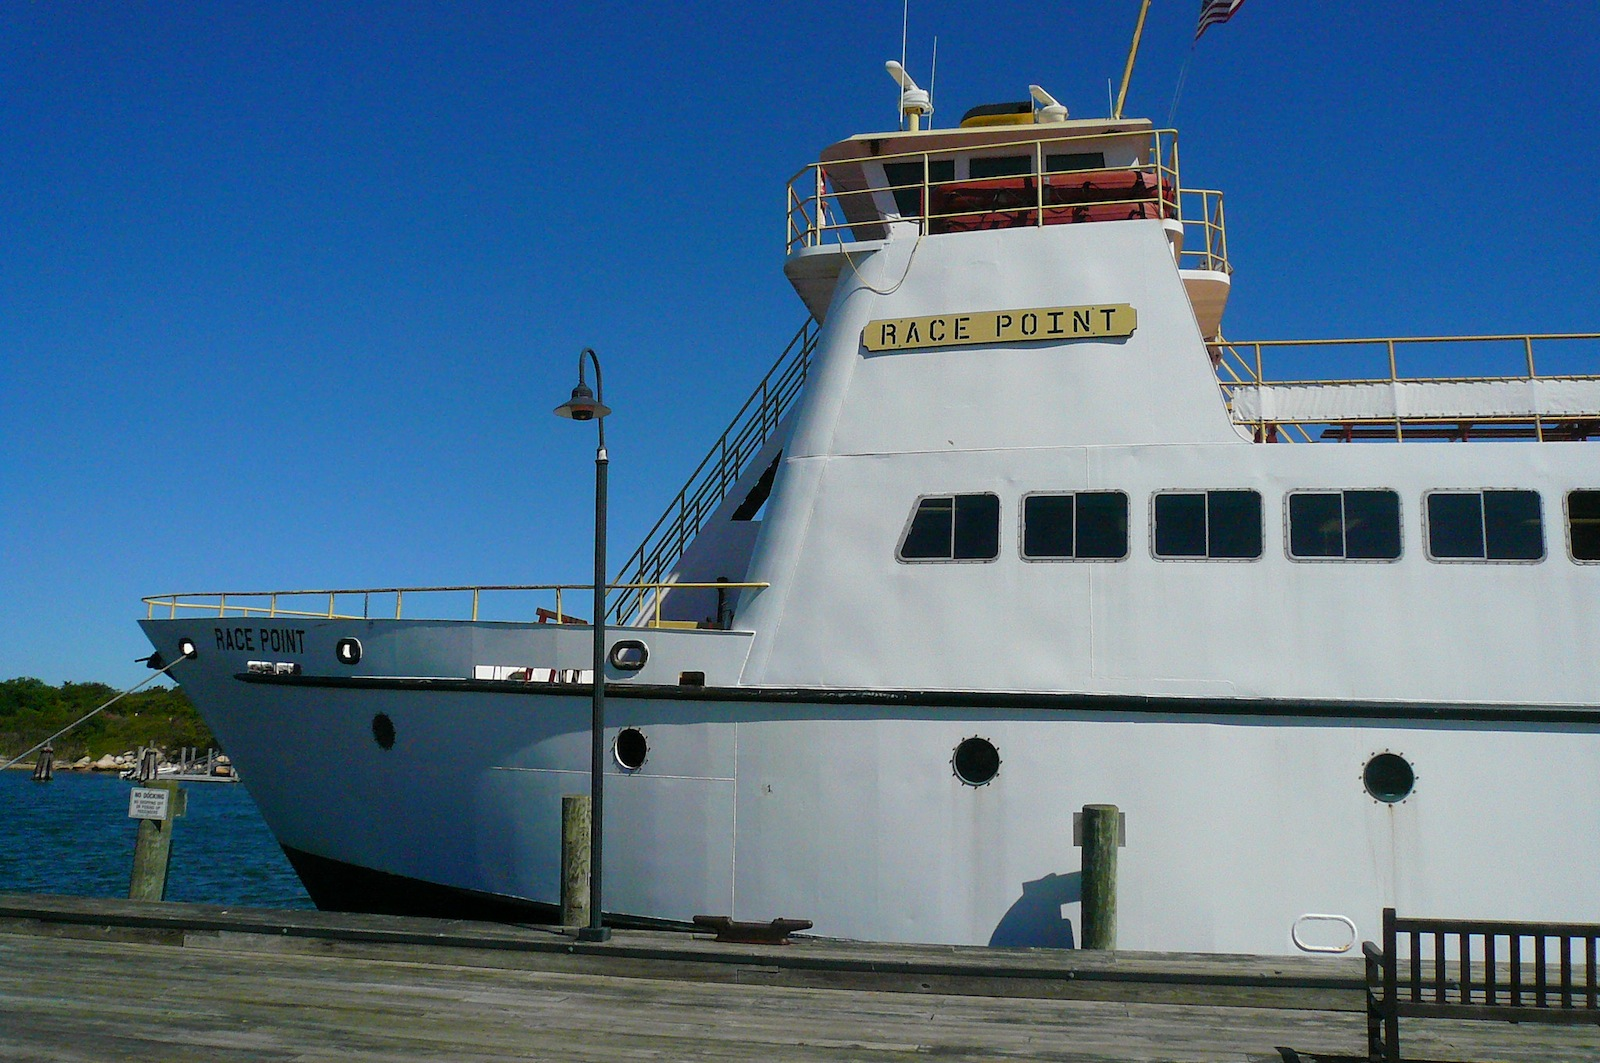 Here's the ferry that took us from New London, Connecticut, to Fishers Island, a 45-minute ride.